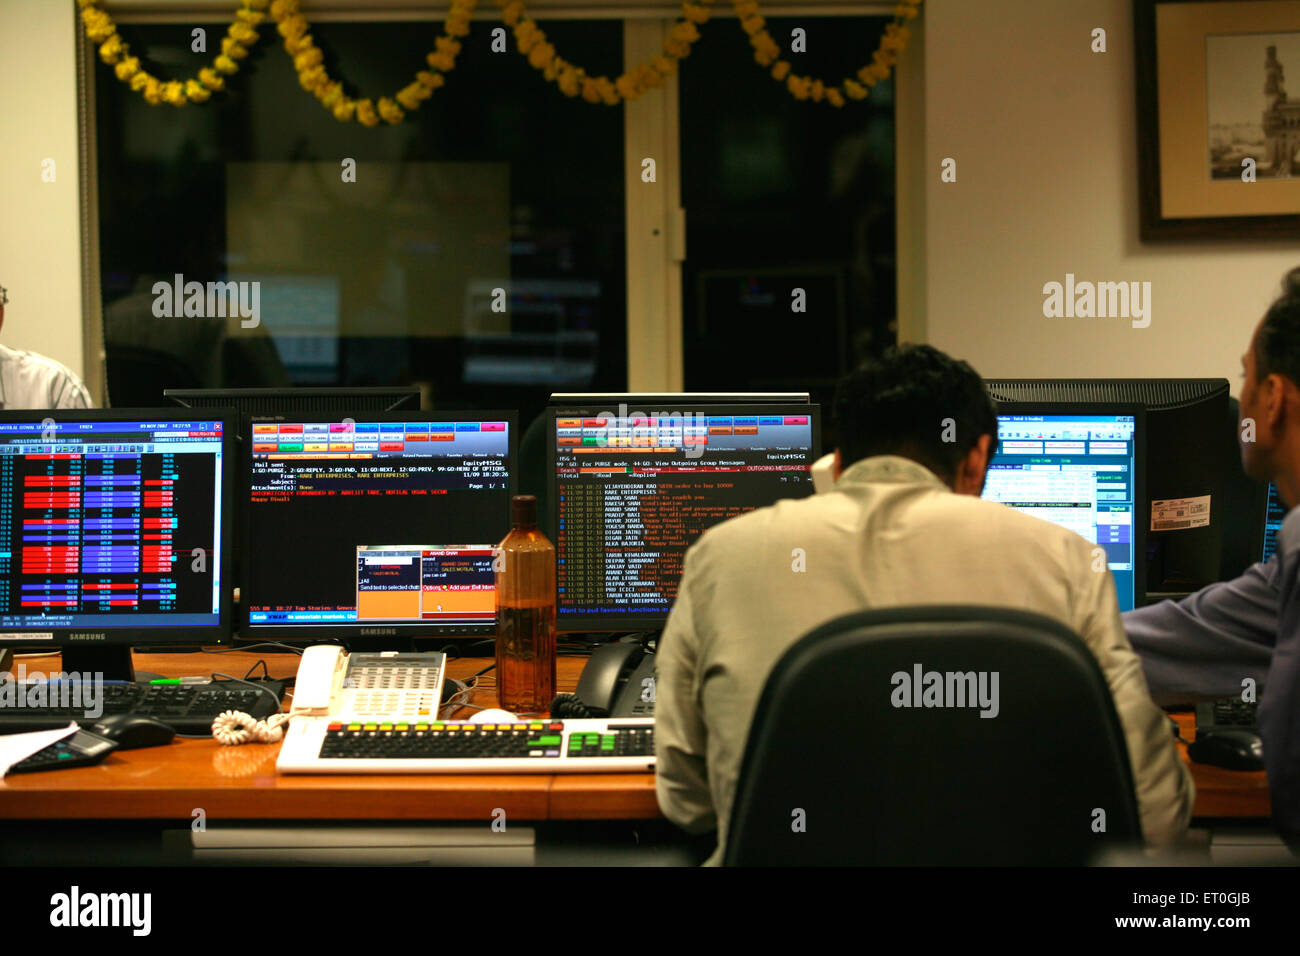 Stock brokers doing muhurat trading marking beginning of new trading year after Lakshmi puja performed in brokers - Stock Image